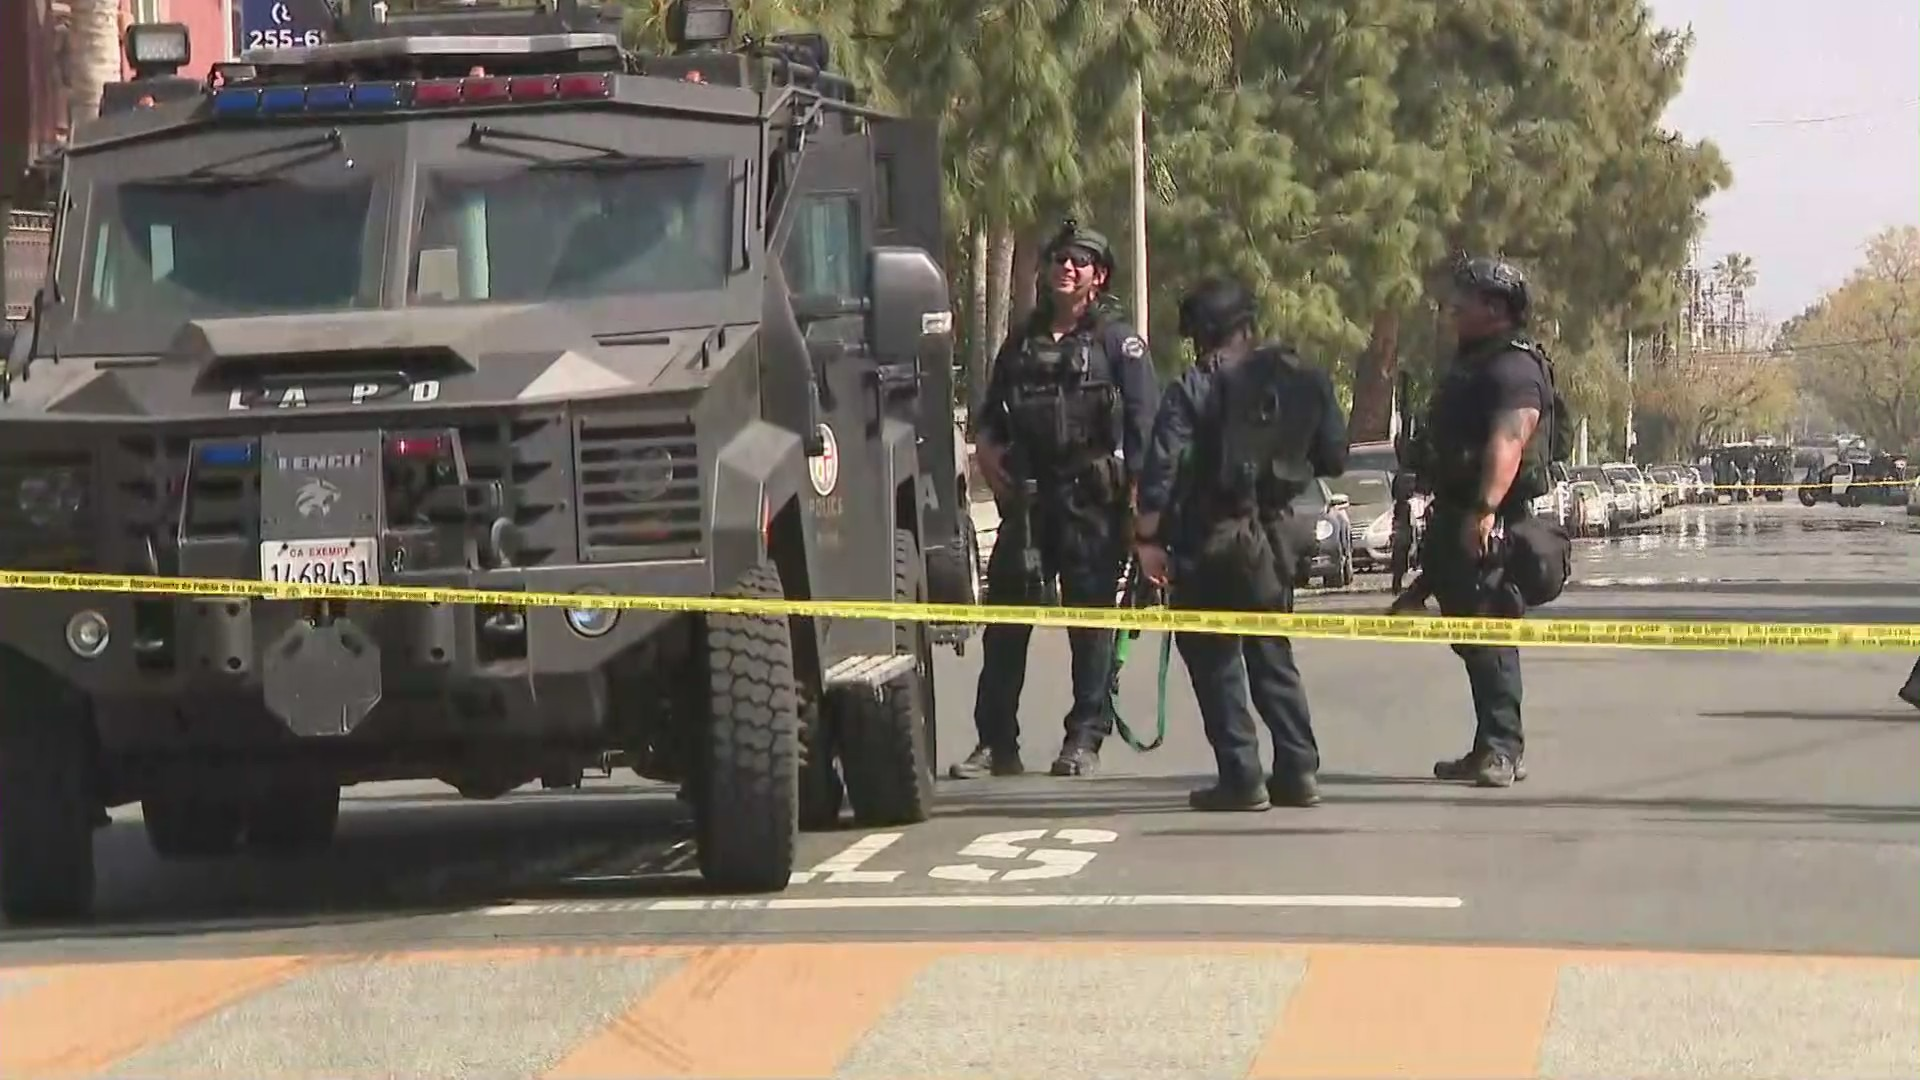 Police are seen outside a Sylmar school that had to be evacuated after reports of a man with a rifle on April 12, 2021. (KTLA)